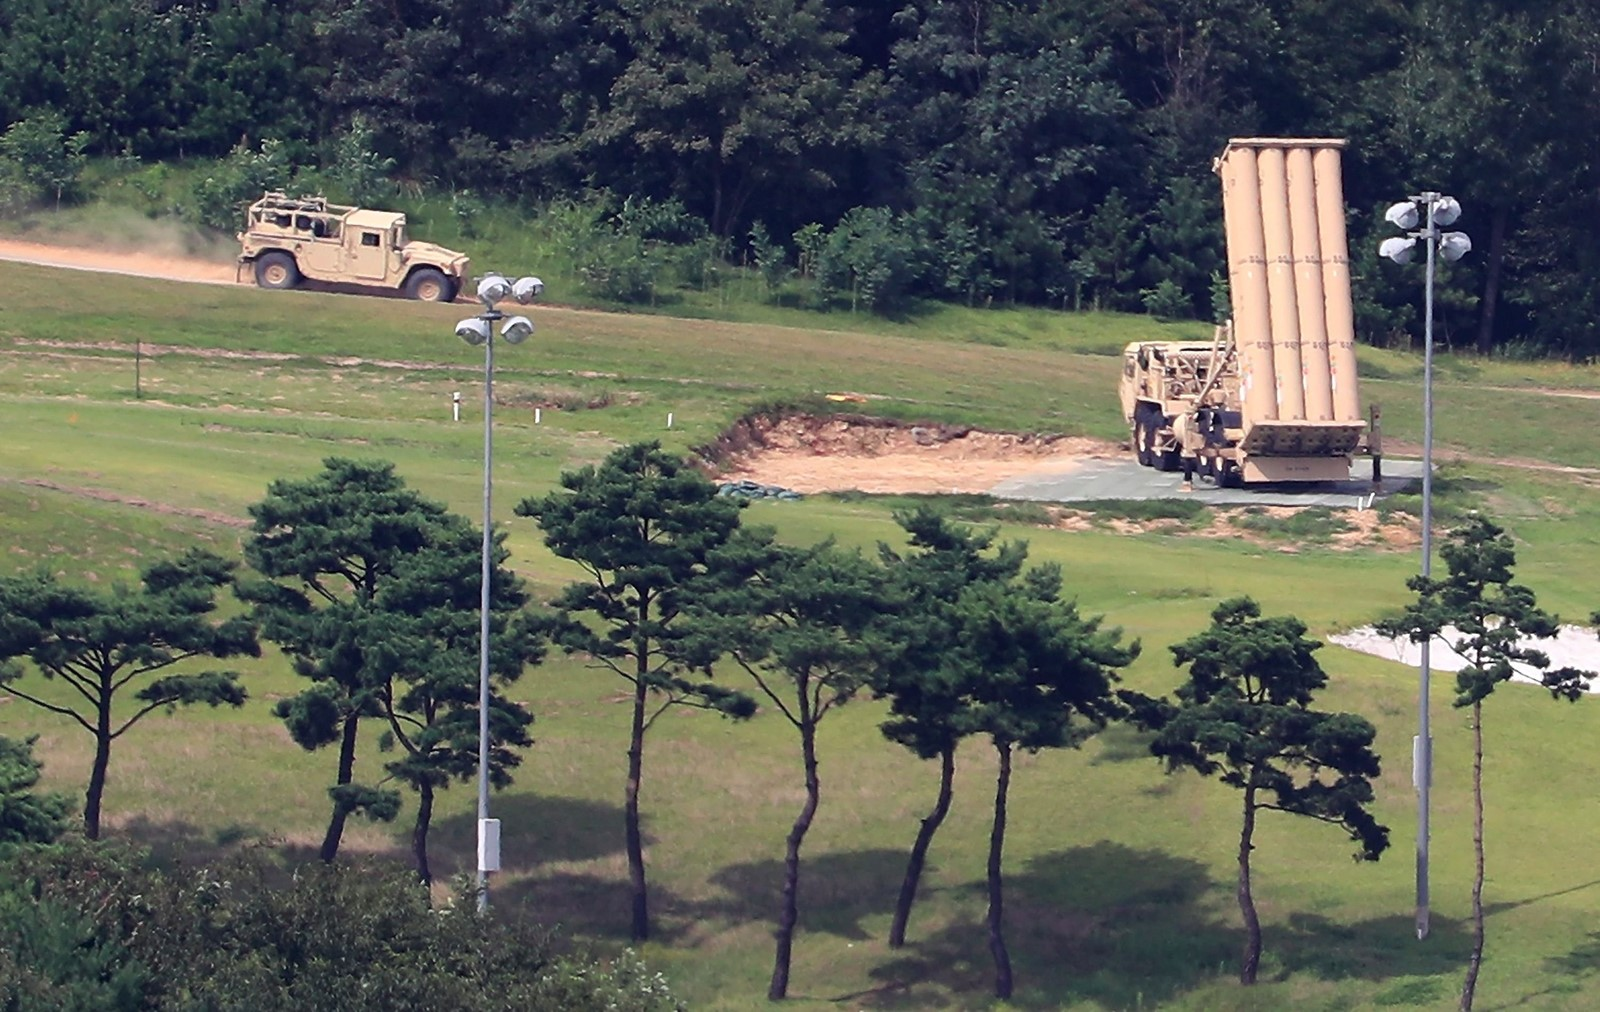 The U.S. installed the Terminal High Altitude Area Defense system last spring on a former golf course in South Korea. China objected, saying the missile defense system's radar encroaches on its sovereignty. — Photograph: Agence France-Presse/Getty Images.